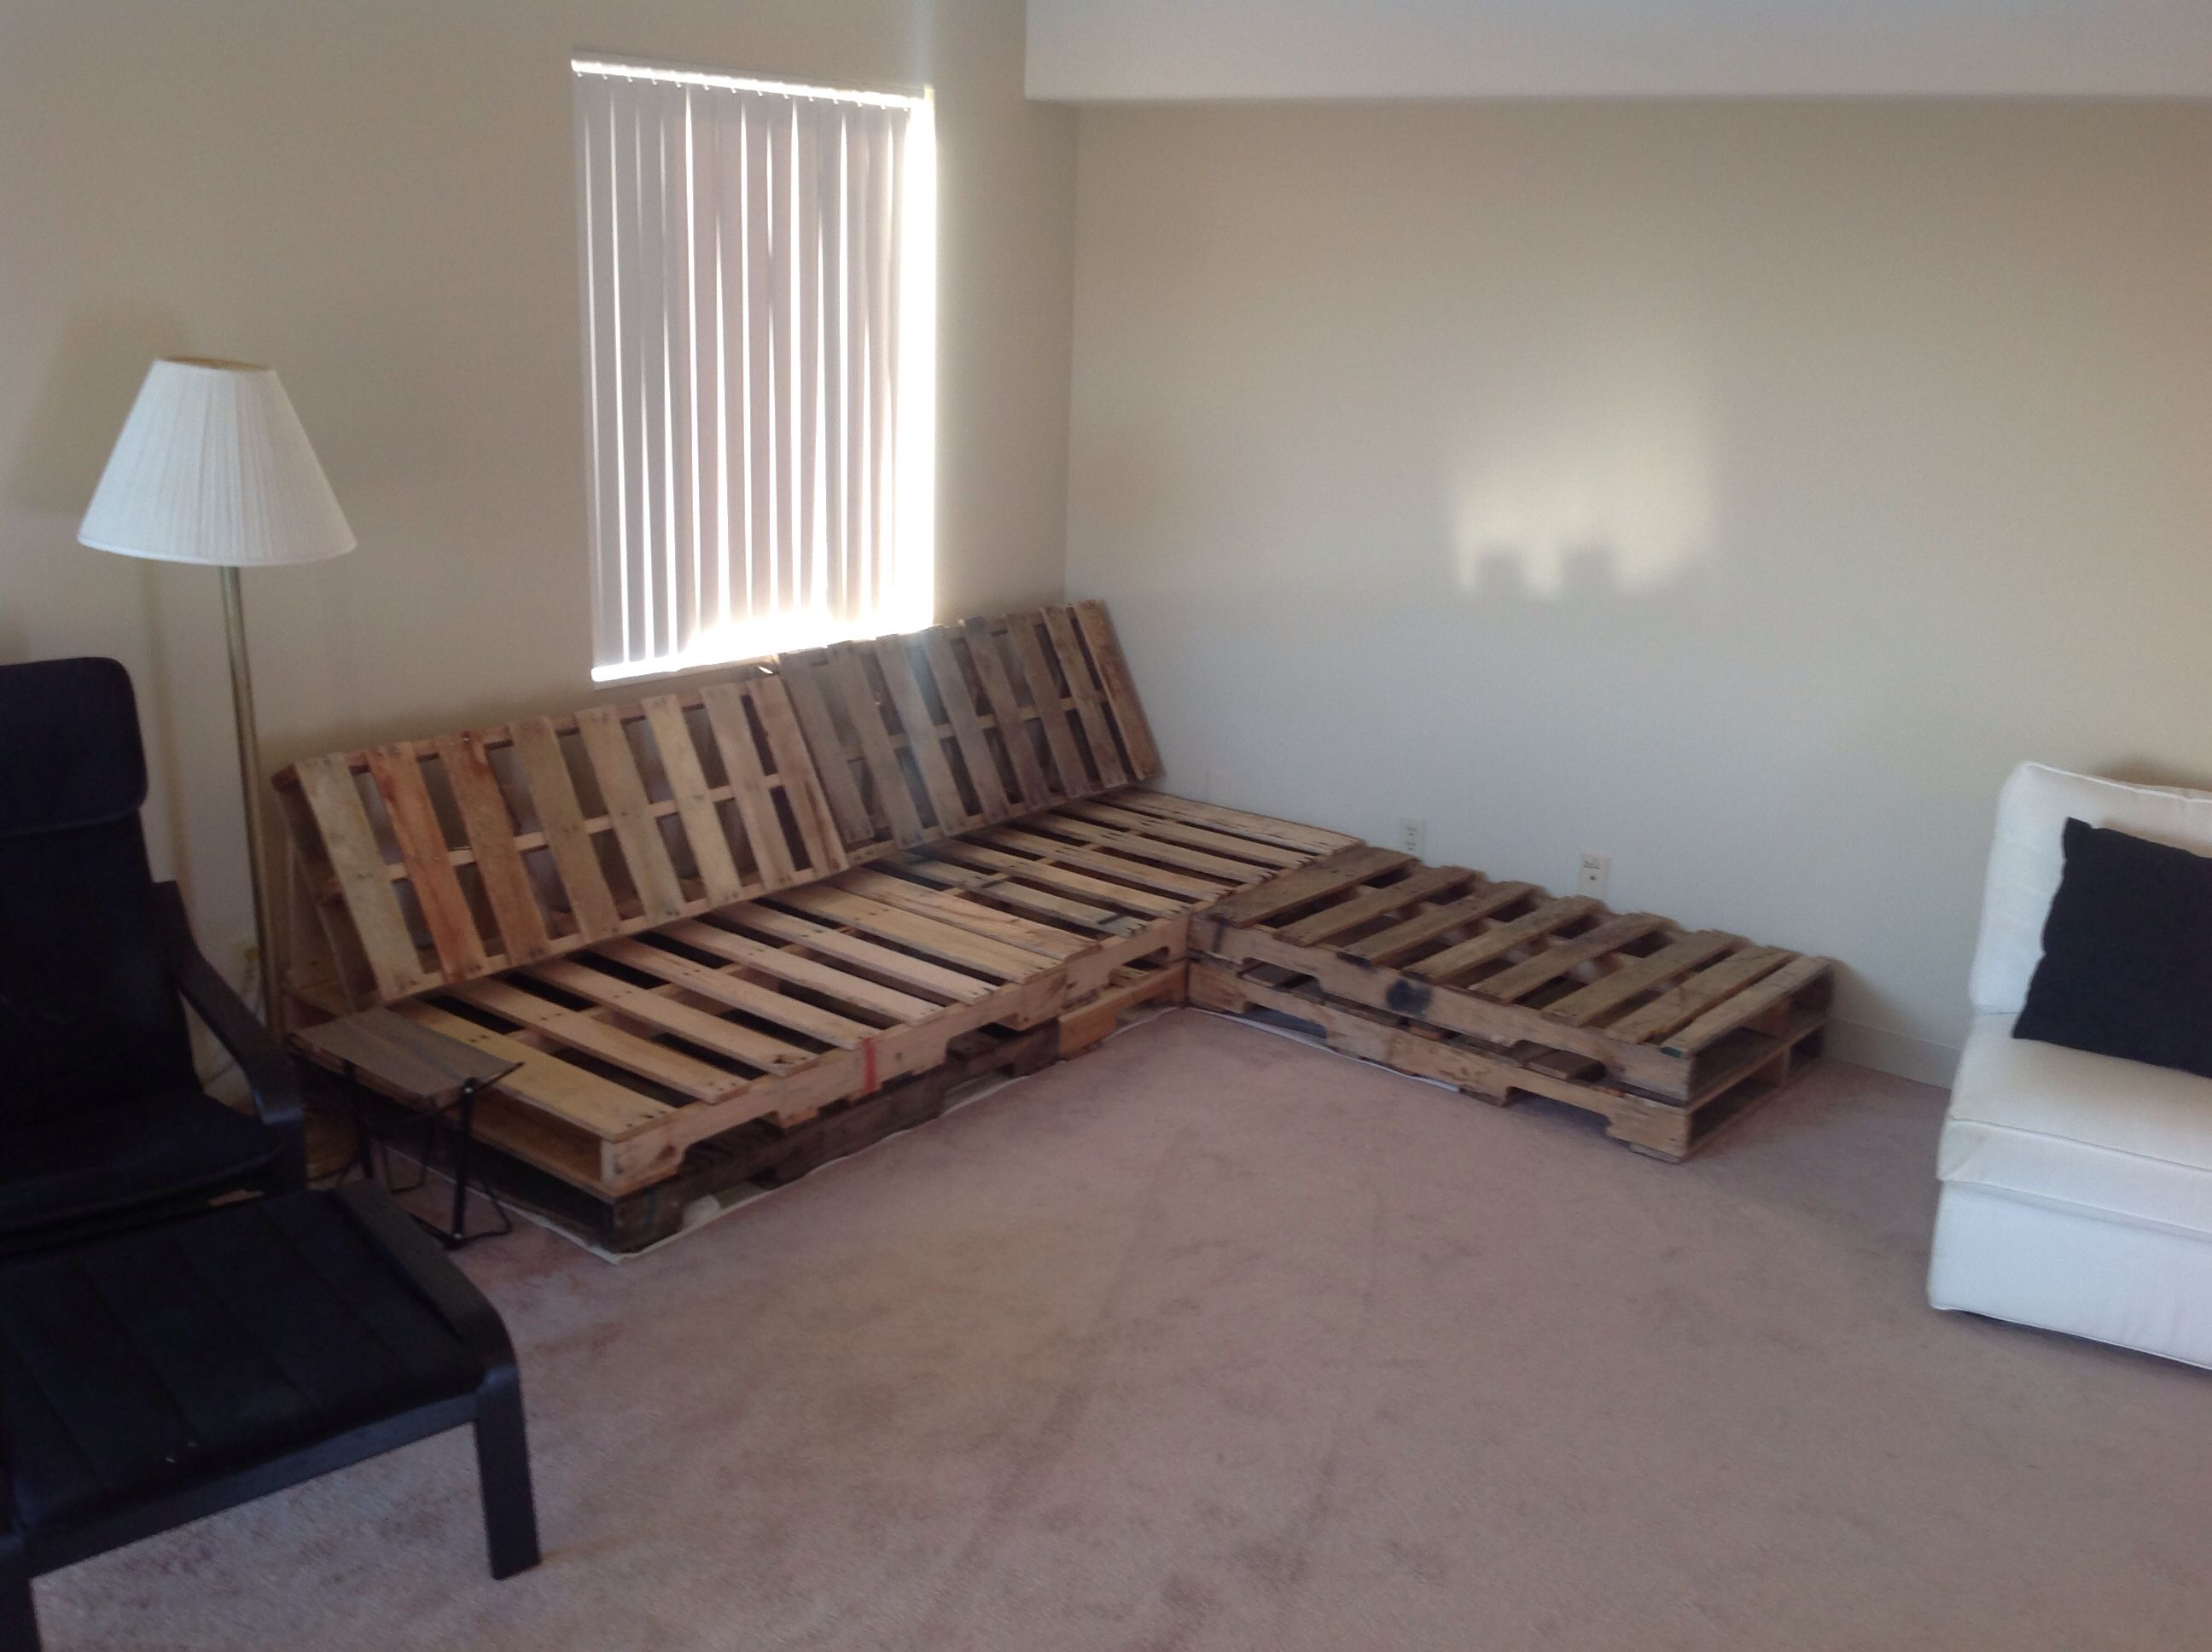 Diy Pallet Couch With Chaise Lounge Cushions Are In Production